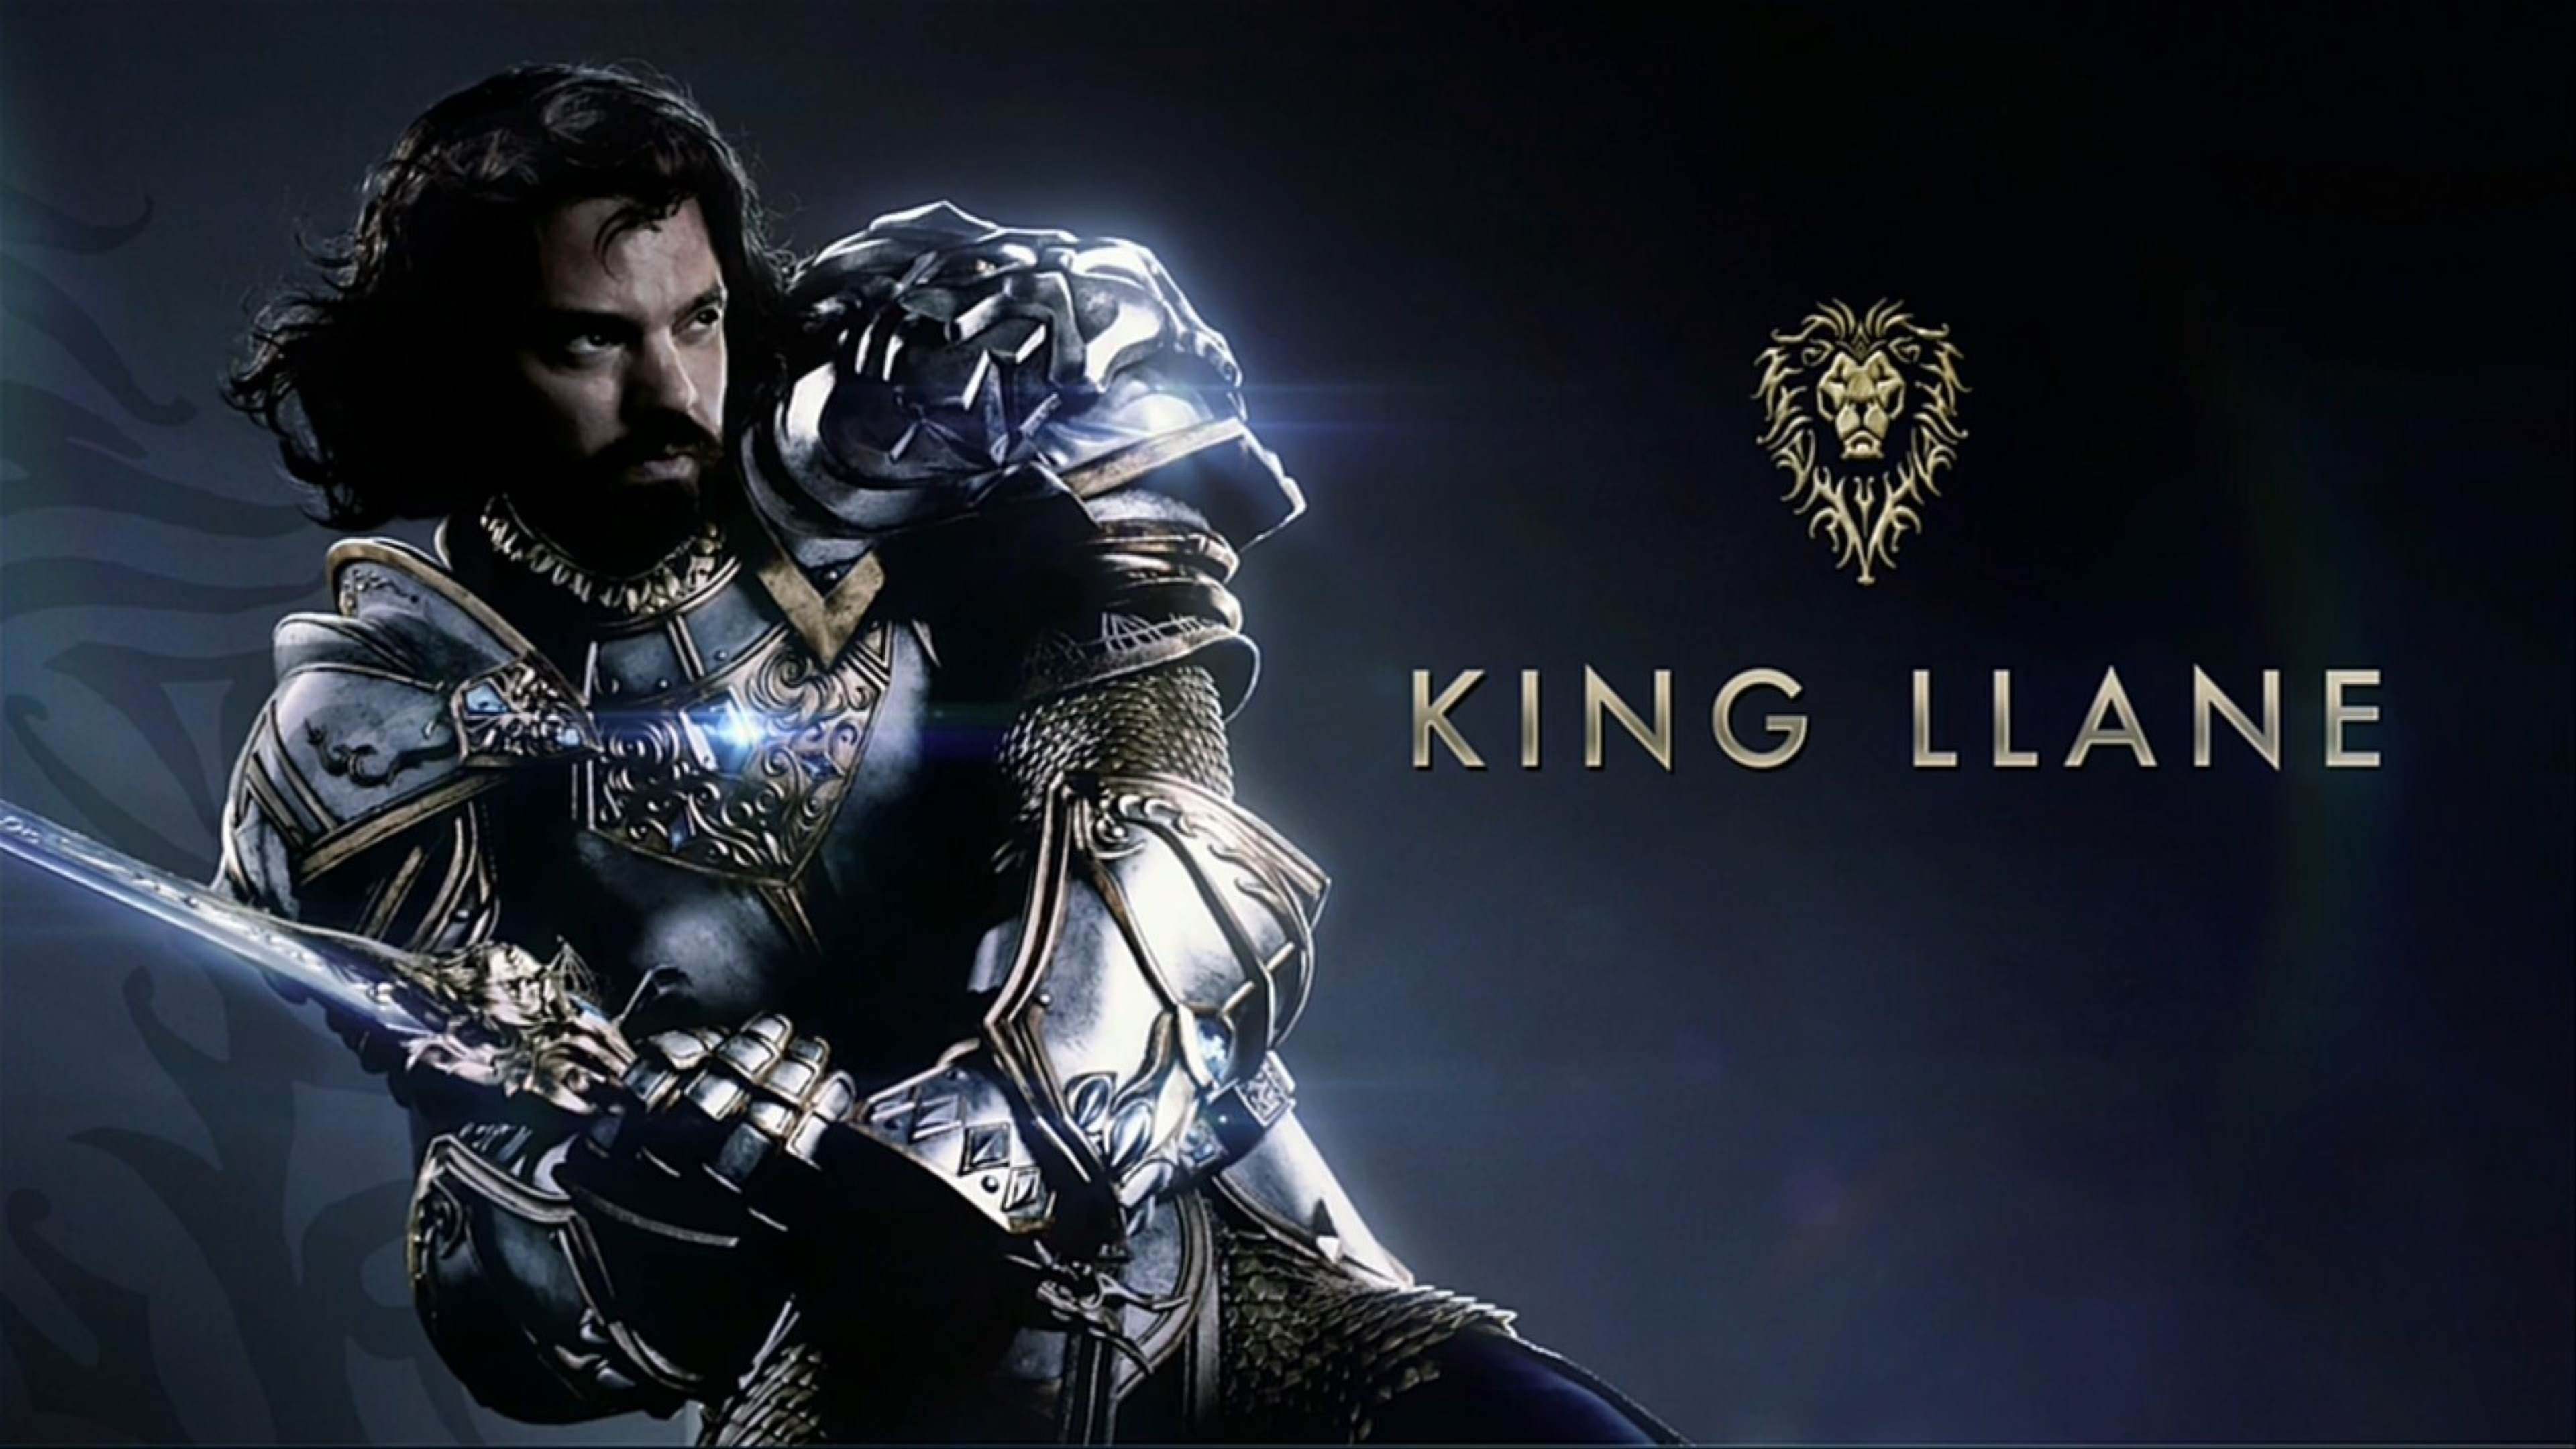 Wallpaper 4k King Llane Warcraft 2016 Movies Wallpapers Movies